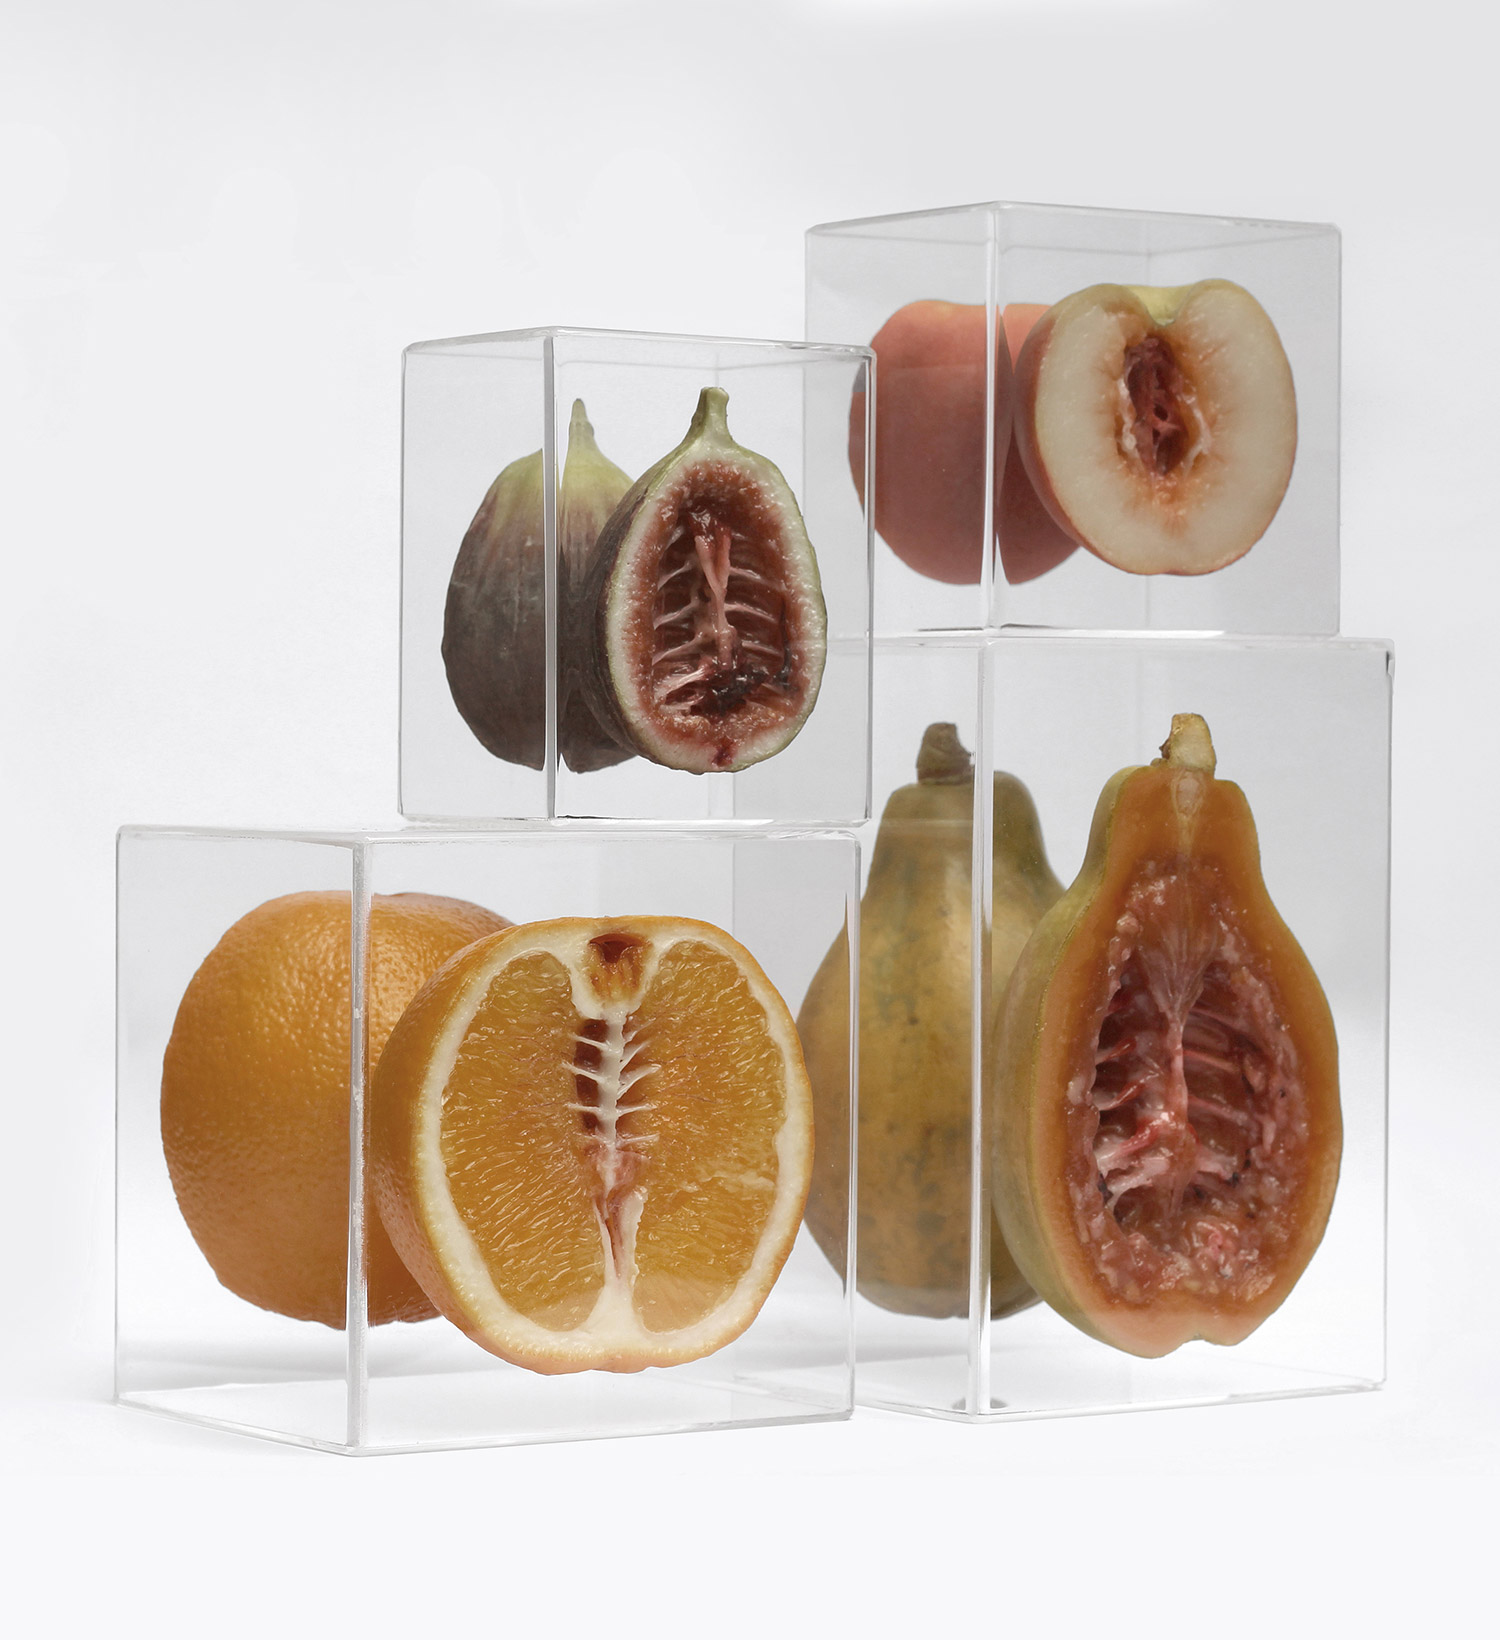 Monica Piloni - Fig, Orange, Papaya, Peach, Hybrid series